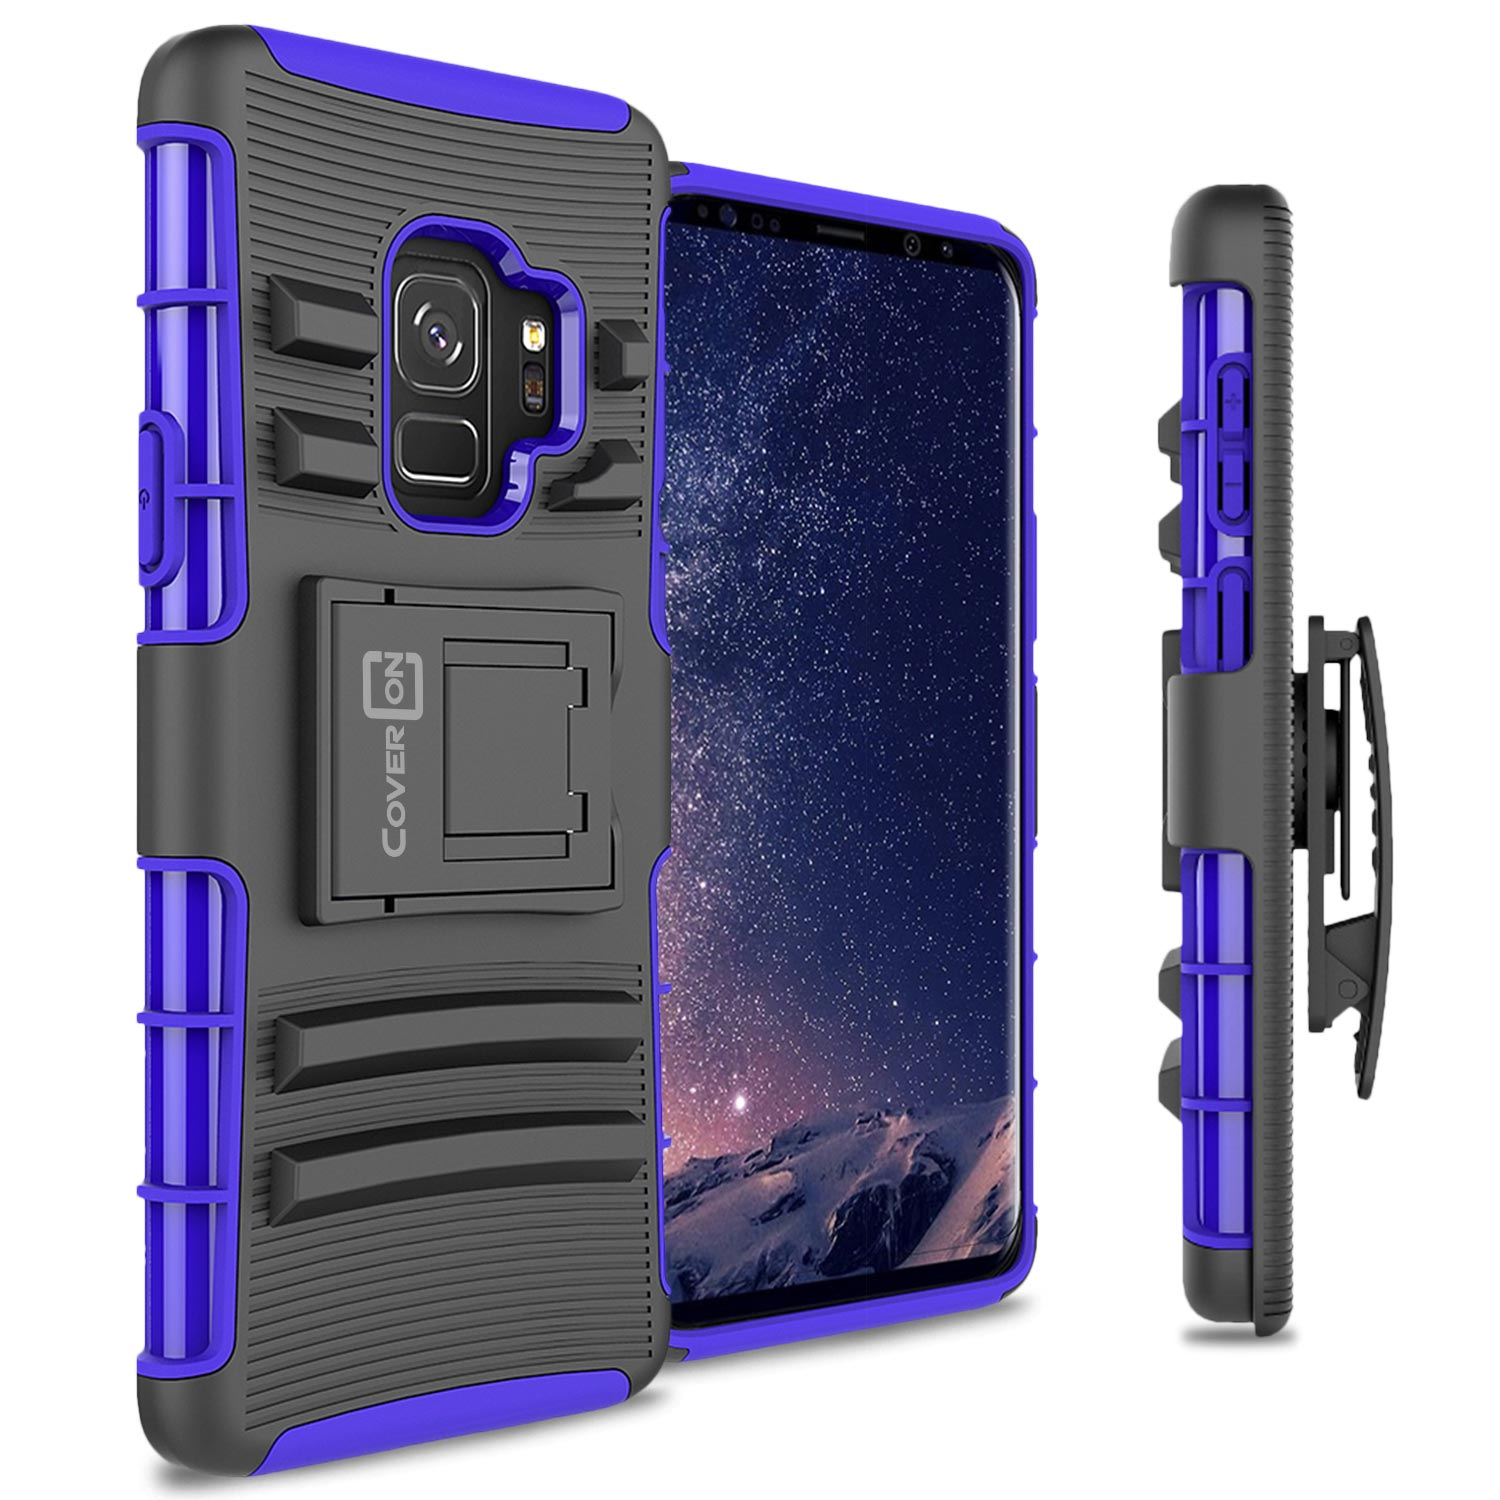 CoverON Samsung Galaxy S9 Case, Explorer Series Protective Holster Belt Clip Phone Cover